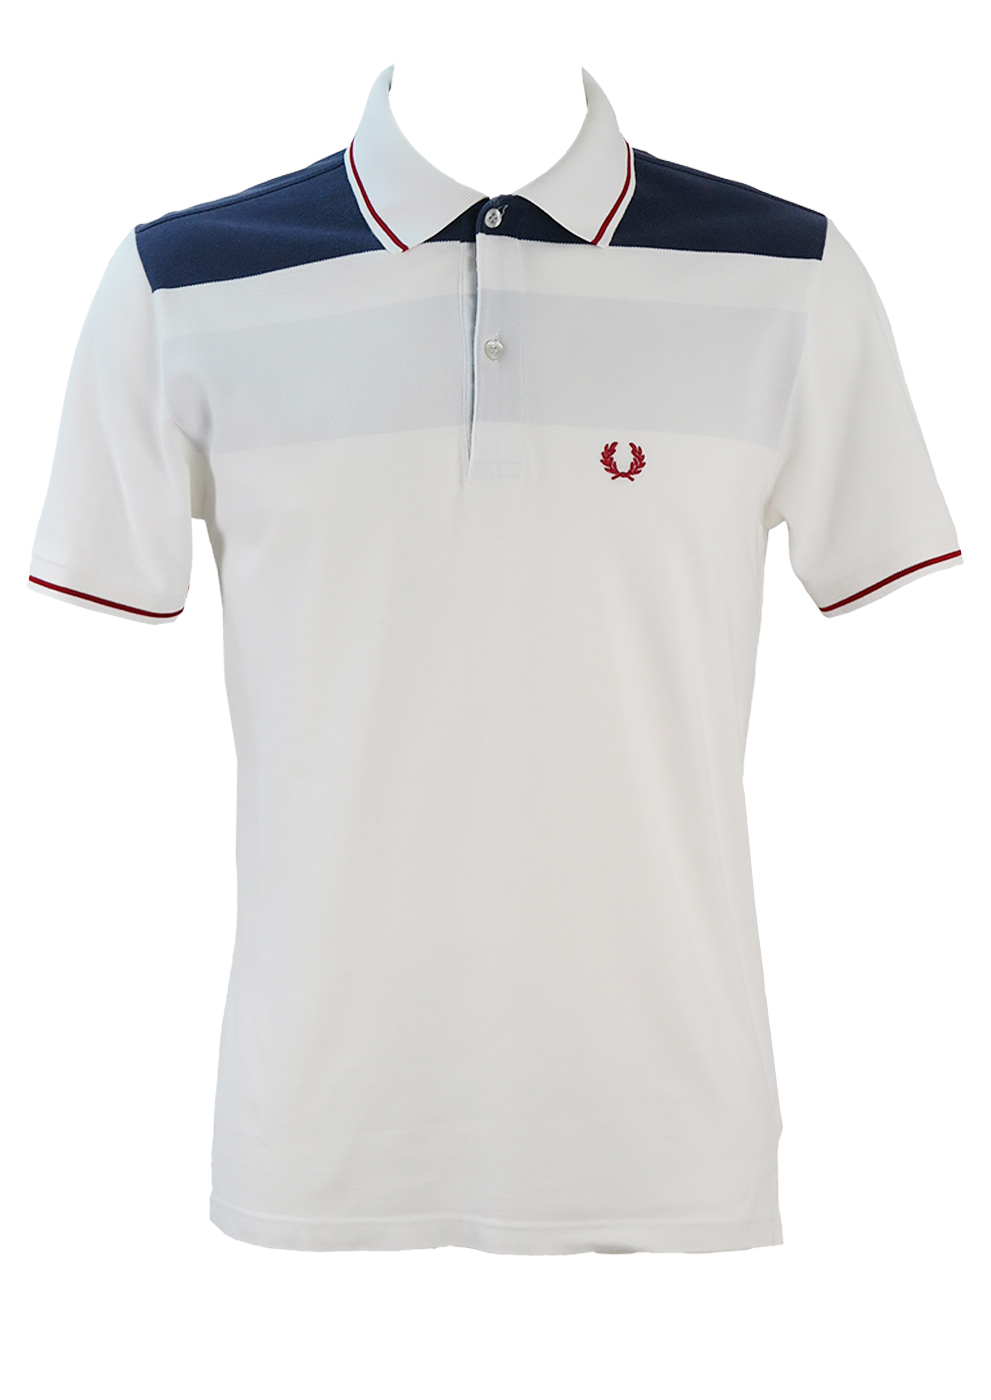 d3bfb3bf6 Fred Perry White Polo Shirt with Blue, Grey and Burgundy Stripes – S ...